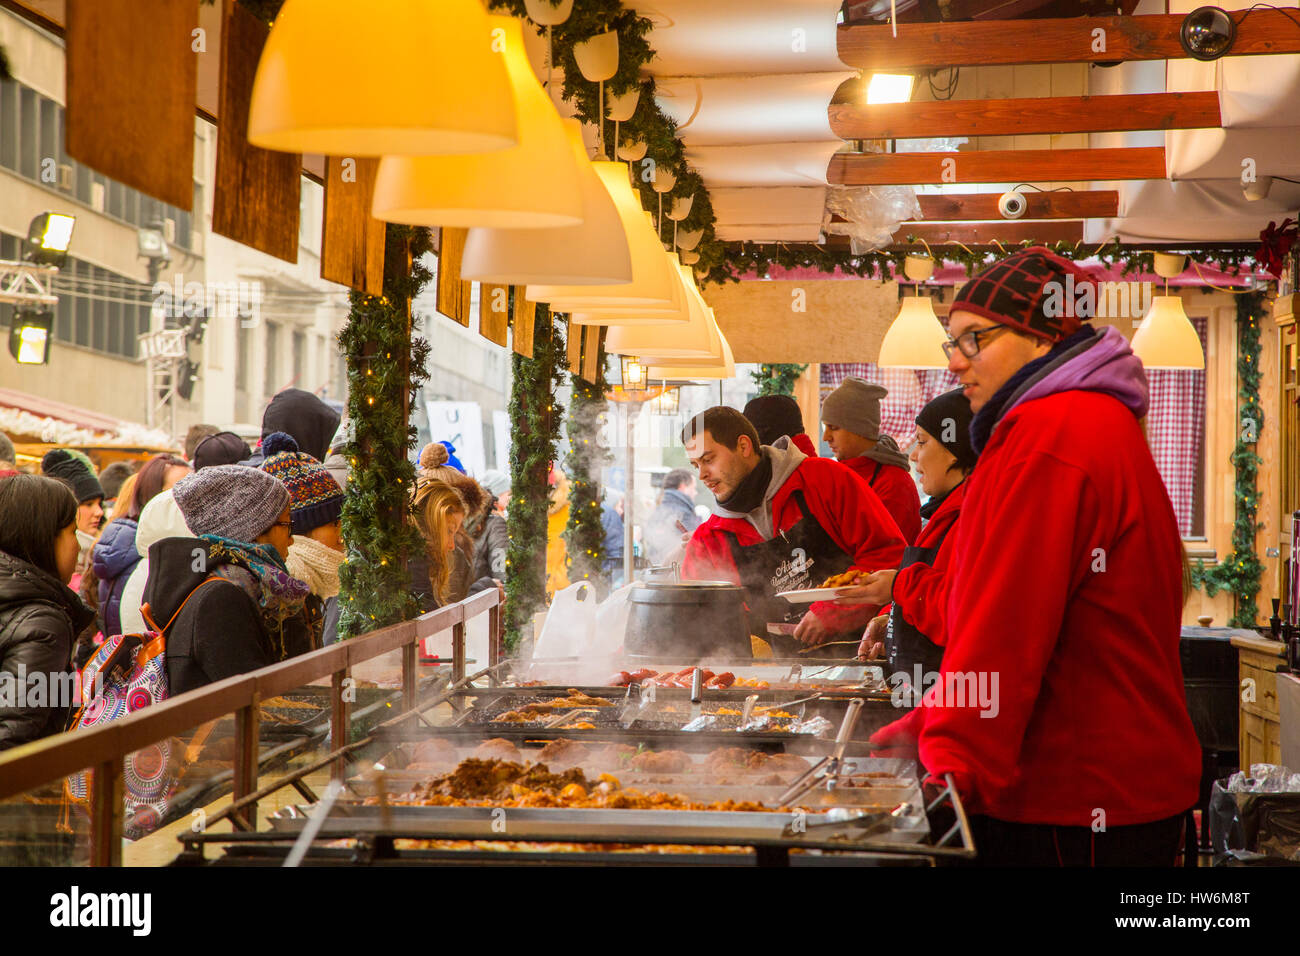 Food in the open air food stalls. Christmas Market. Budapest Hungary, Southeast Europe Stock Photo